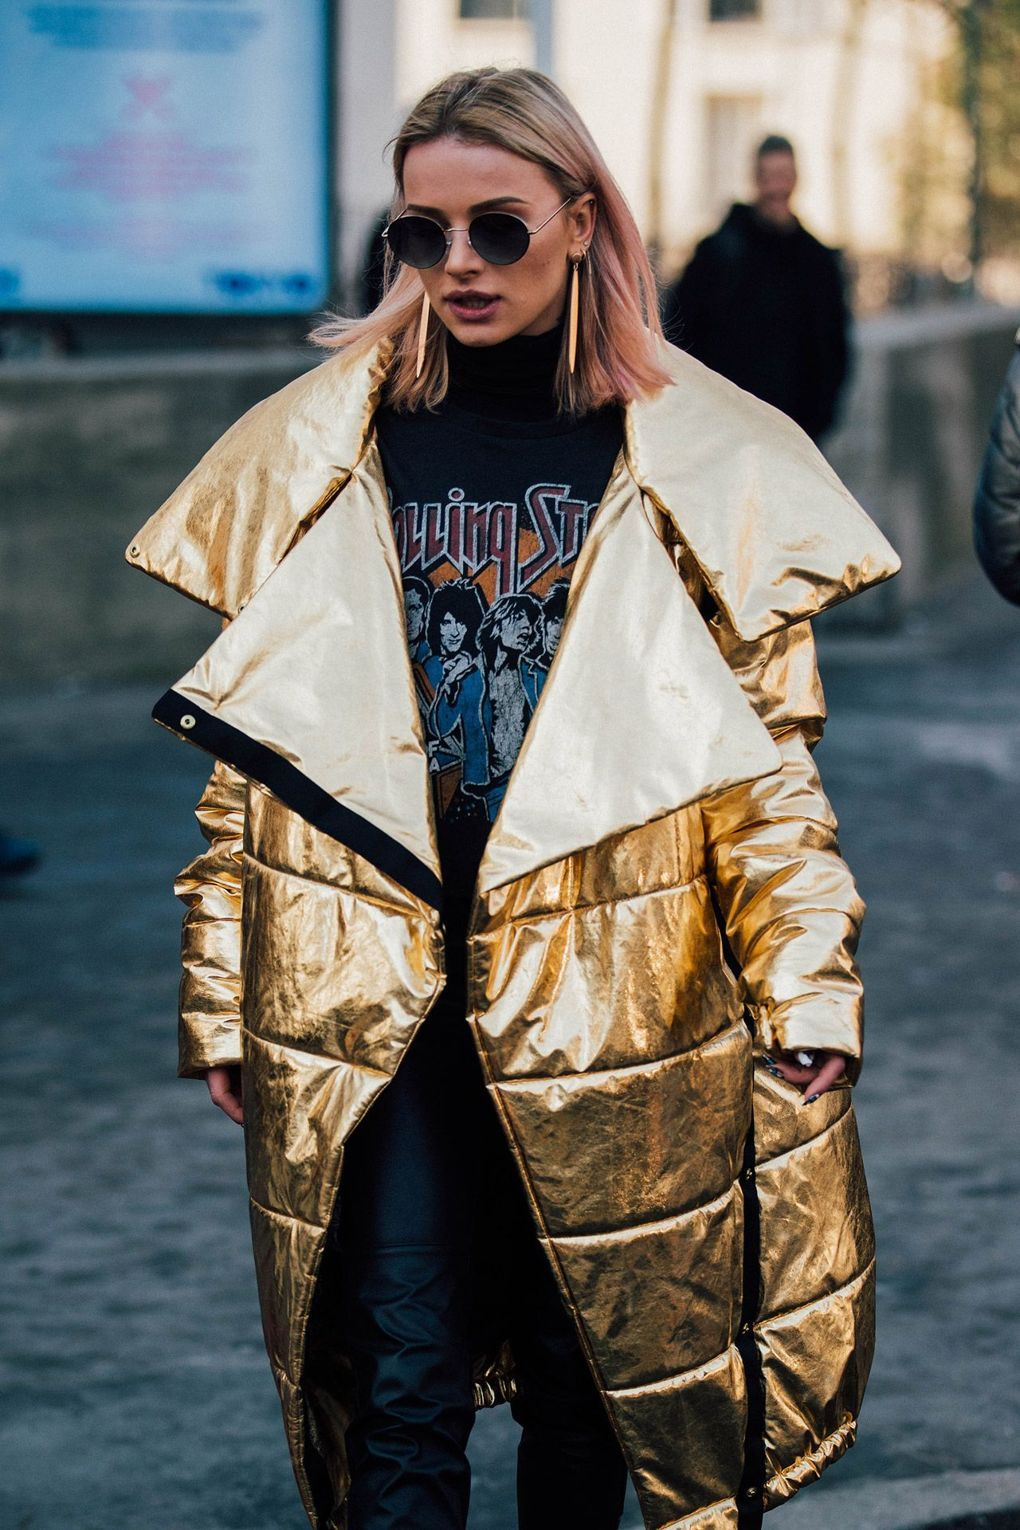 a7ad63d668d Paris Fashion Week Men s Street Style. See the best Street Style looks from  Paris Fashion Week Men s.